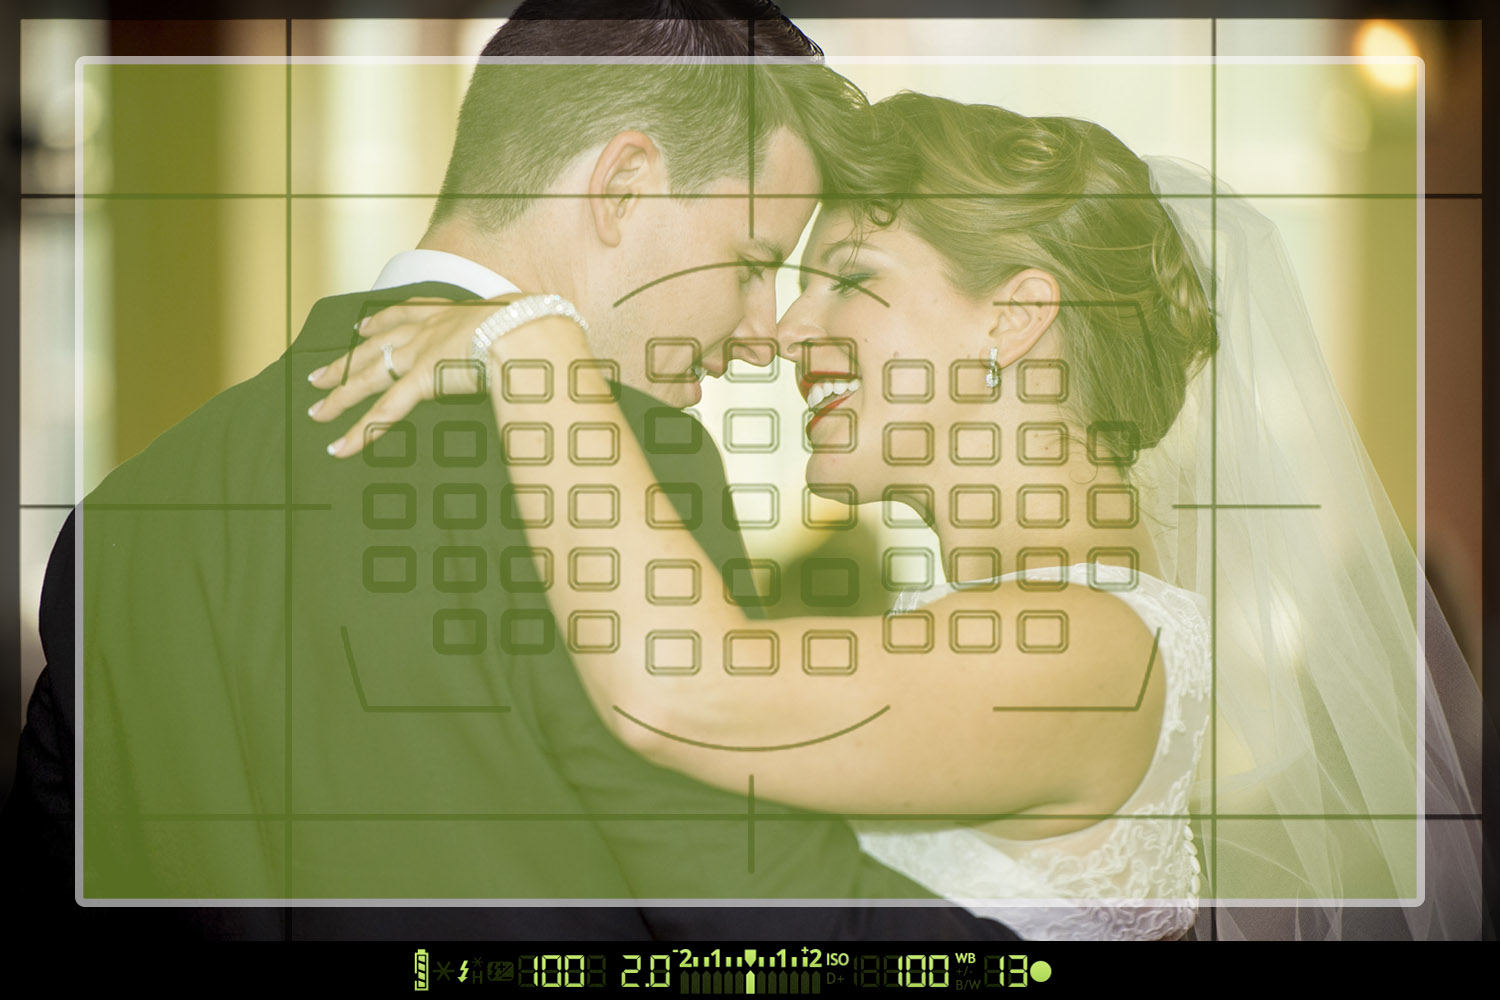 A wedding photo overlaid with the sample area of matrix metering